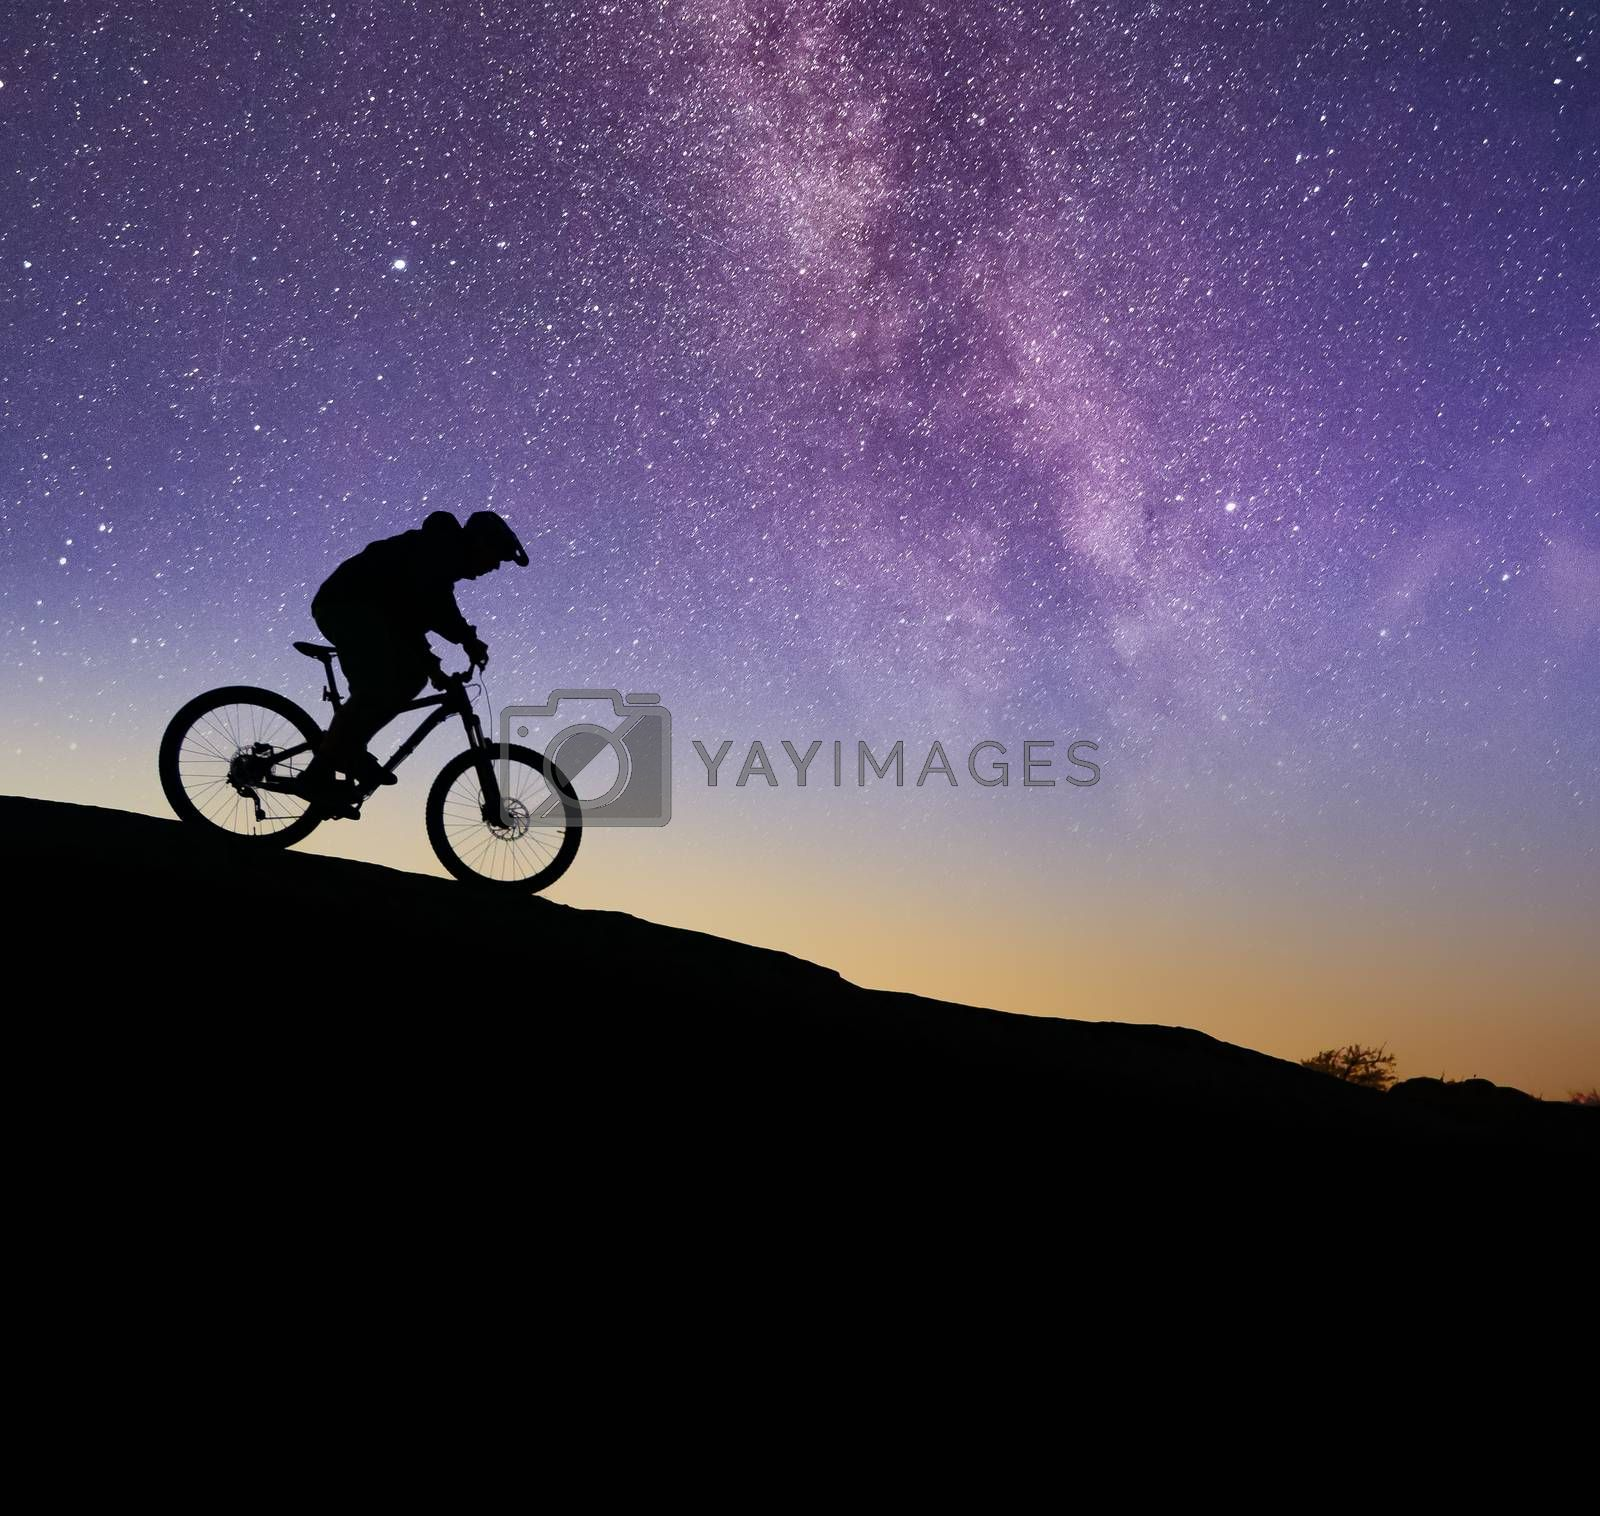 Cyclist Riding the Bike on the Rock Under the Night Sky with Bright Milky Way. Extreme Sport, Active Lifestyle and Adventure Concept.